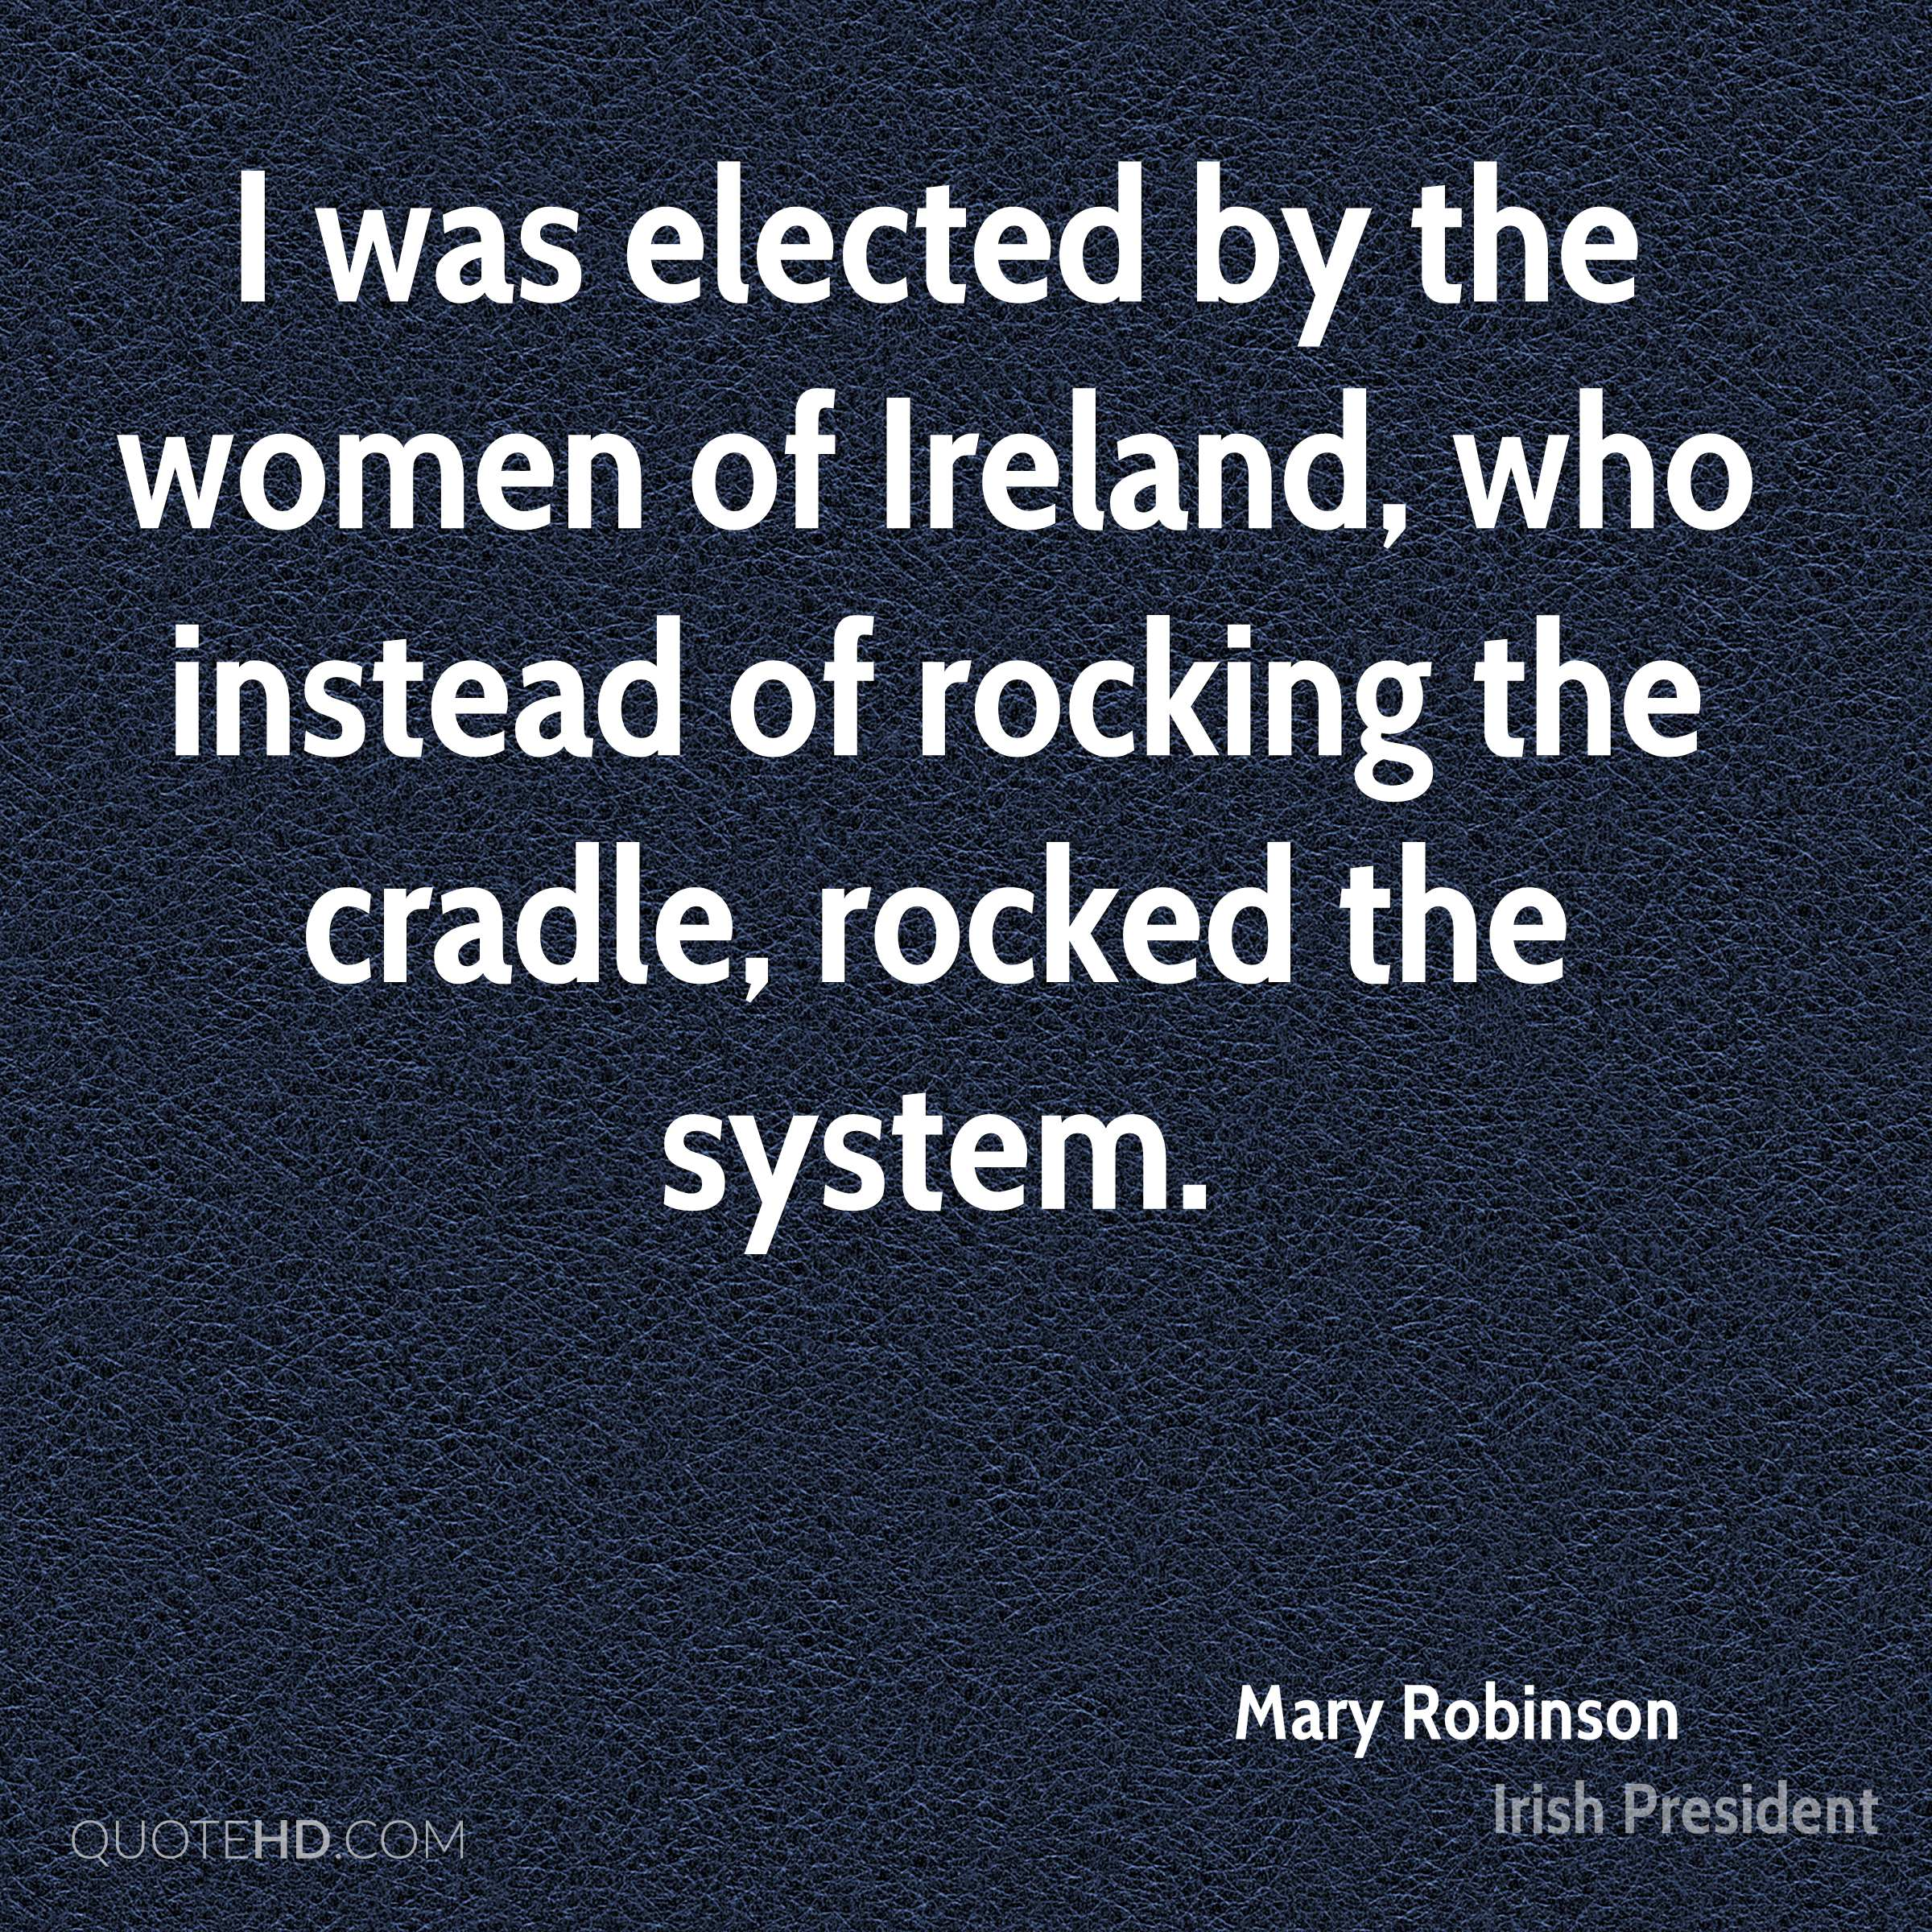 I was elected by the women of Ireland, who instead of rocking the cradle, rocked the system.